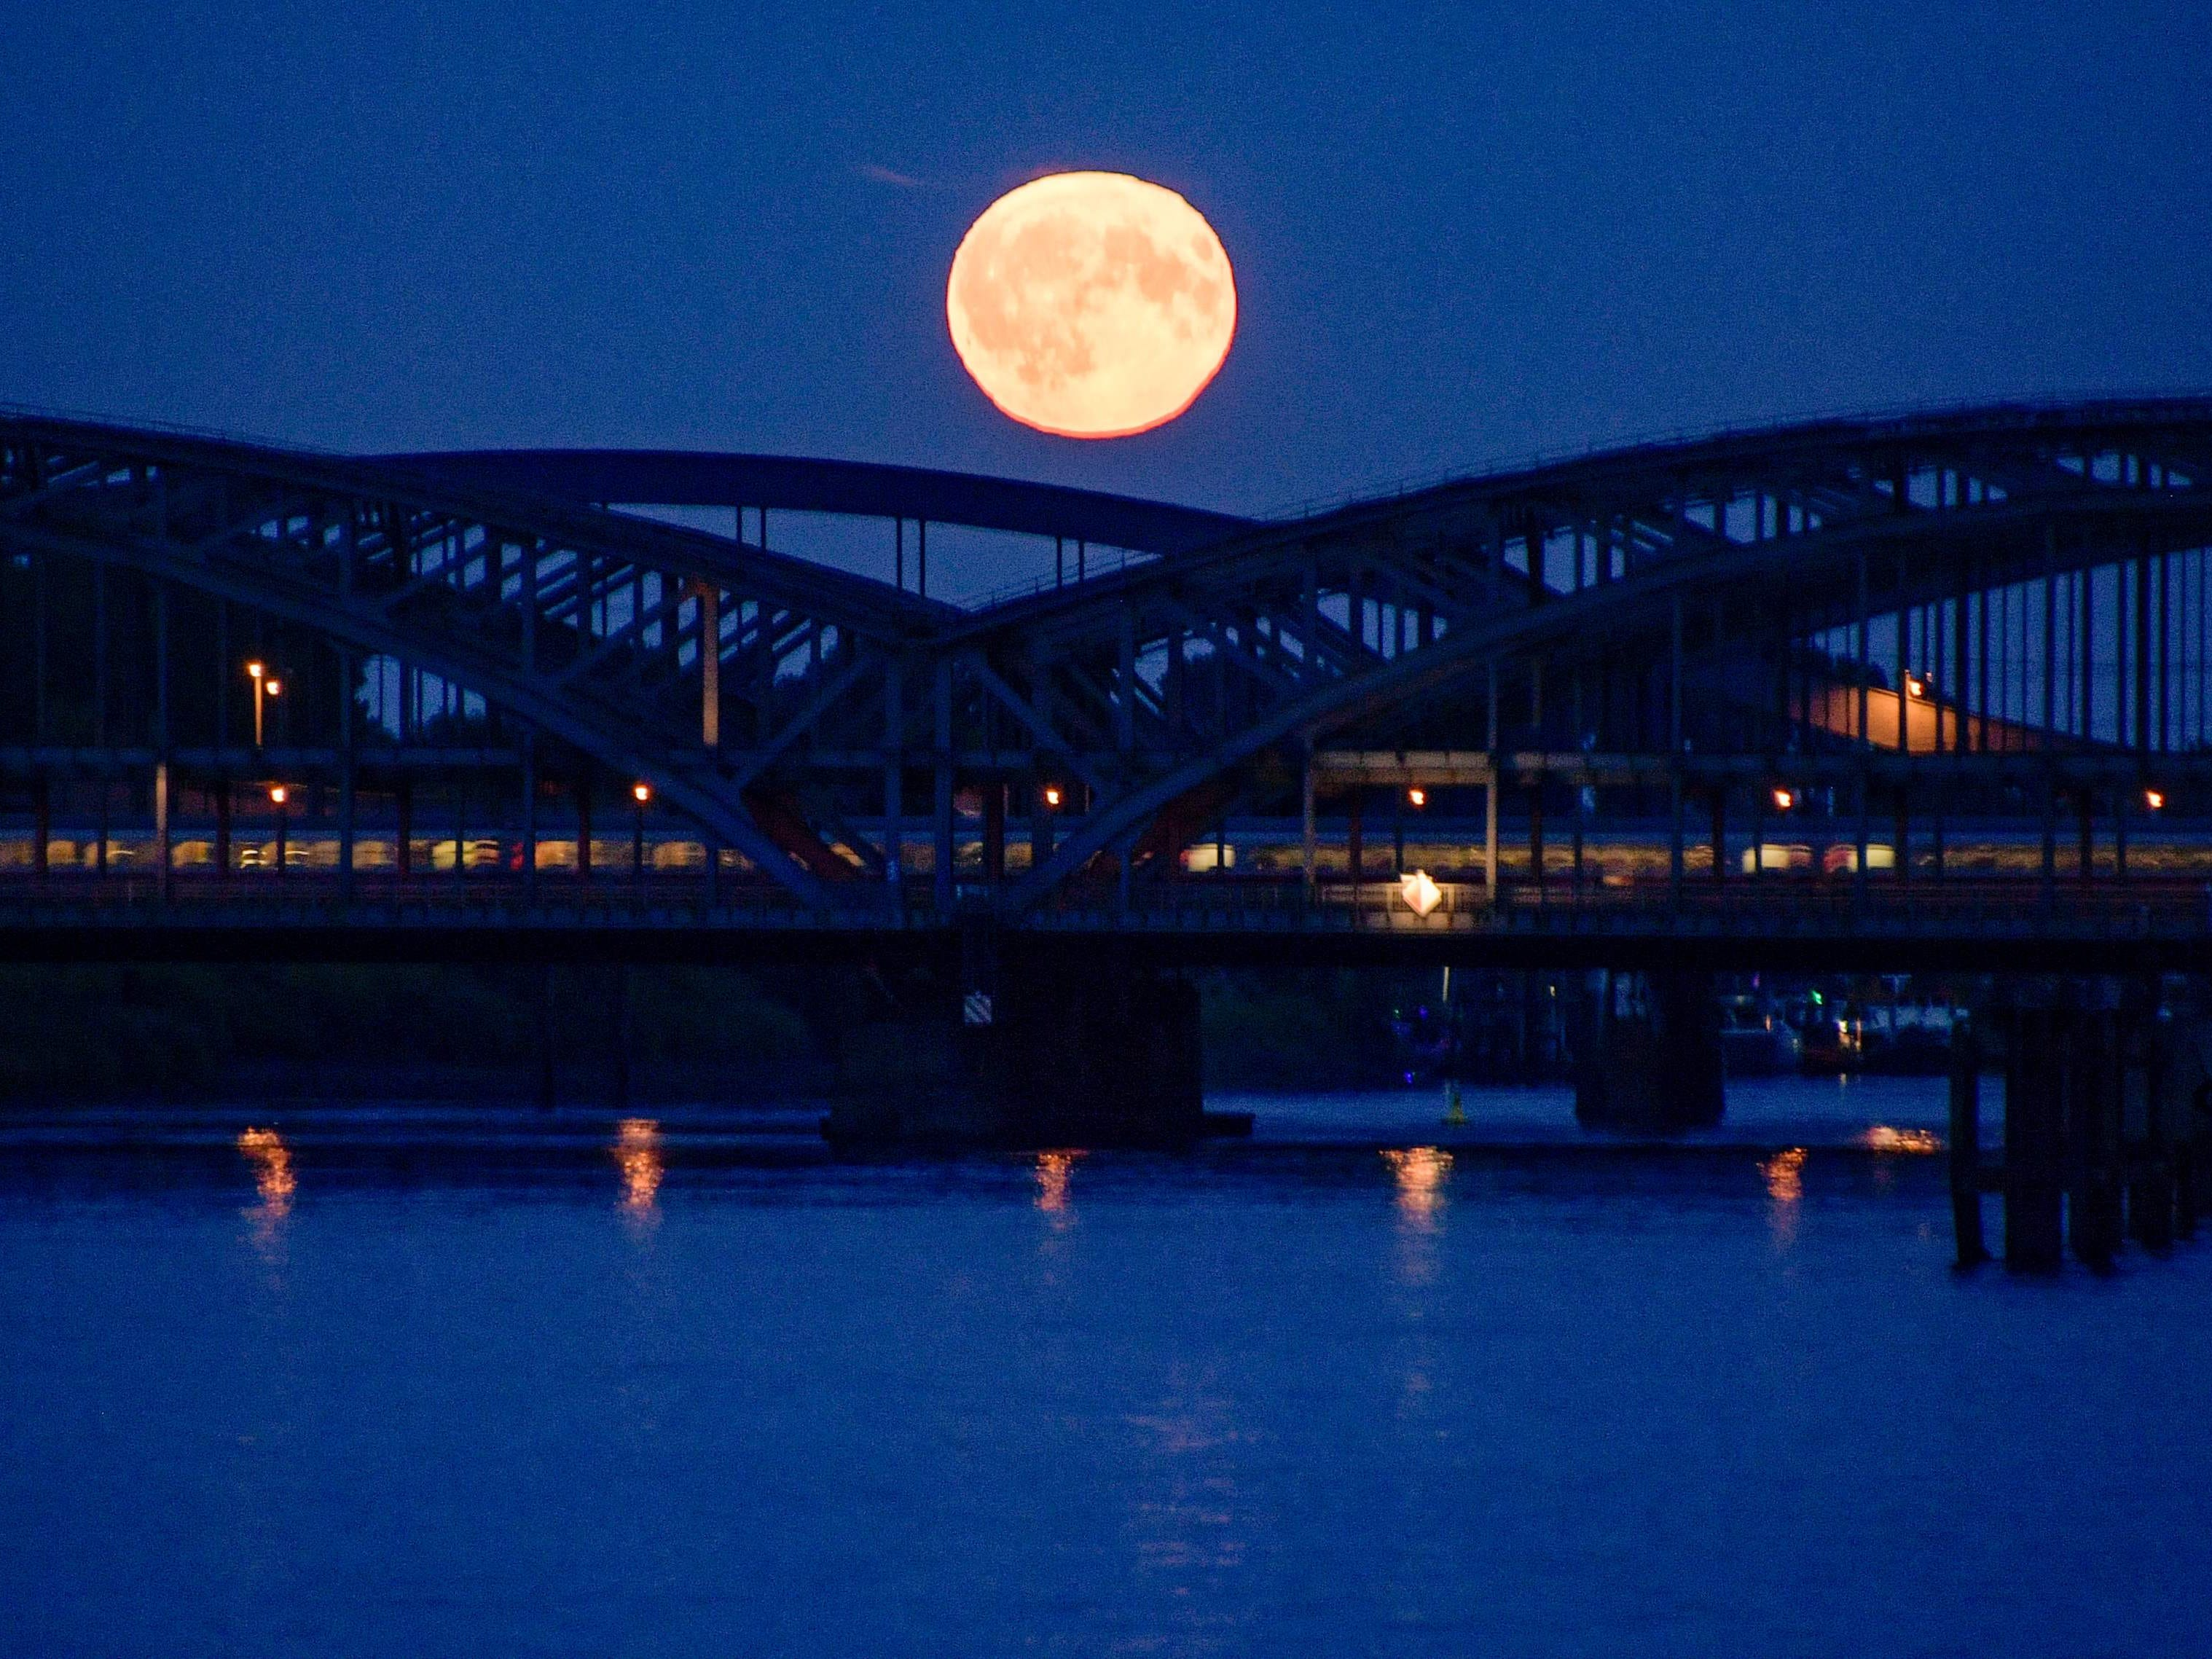 Full moon can be seen on Aug. 26, 2018 behind the Elbbruecken bridges crossing the river Elbe in the Hafencity district of Hamburg, Germany.